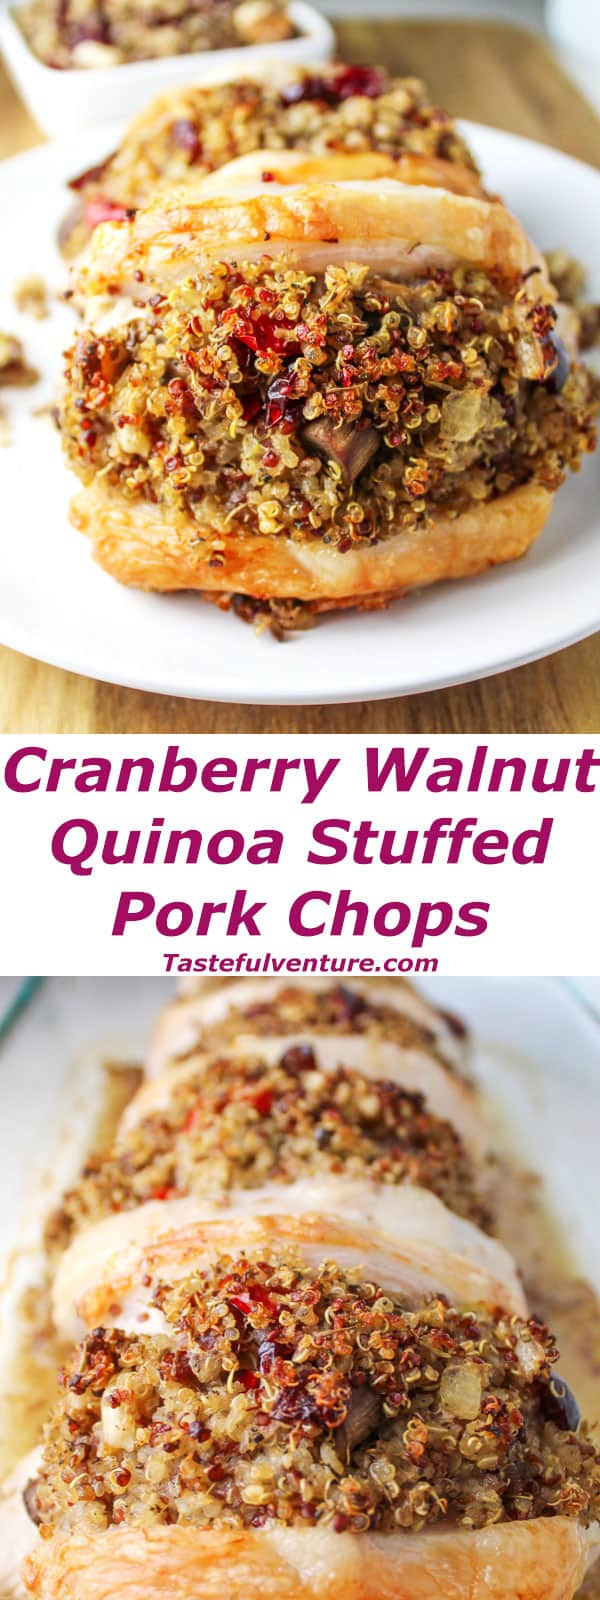 These Cranberry Walnut Quinoa Stuffed Pork Chops are a great way to use up that left over stuffing from Thanksgiving, and it's Gluten Free! | Tastefulventure.com